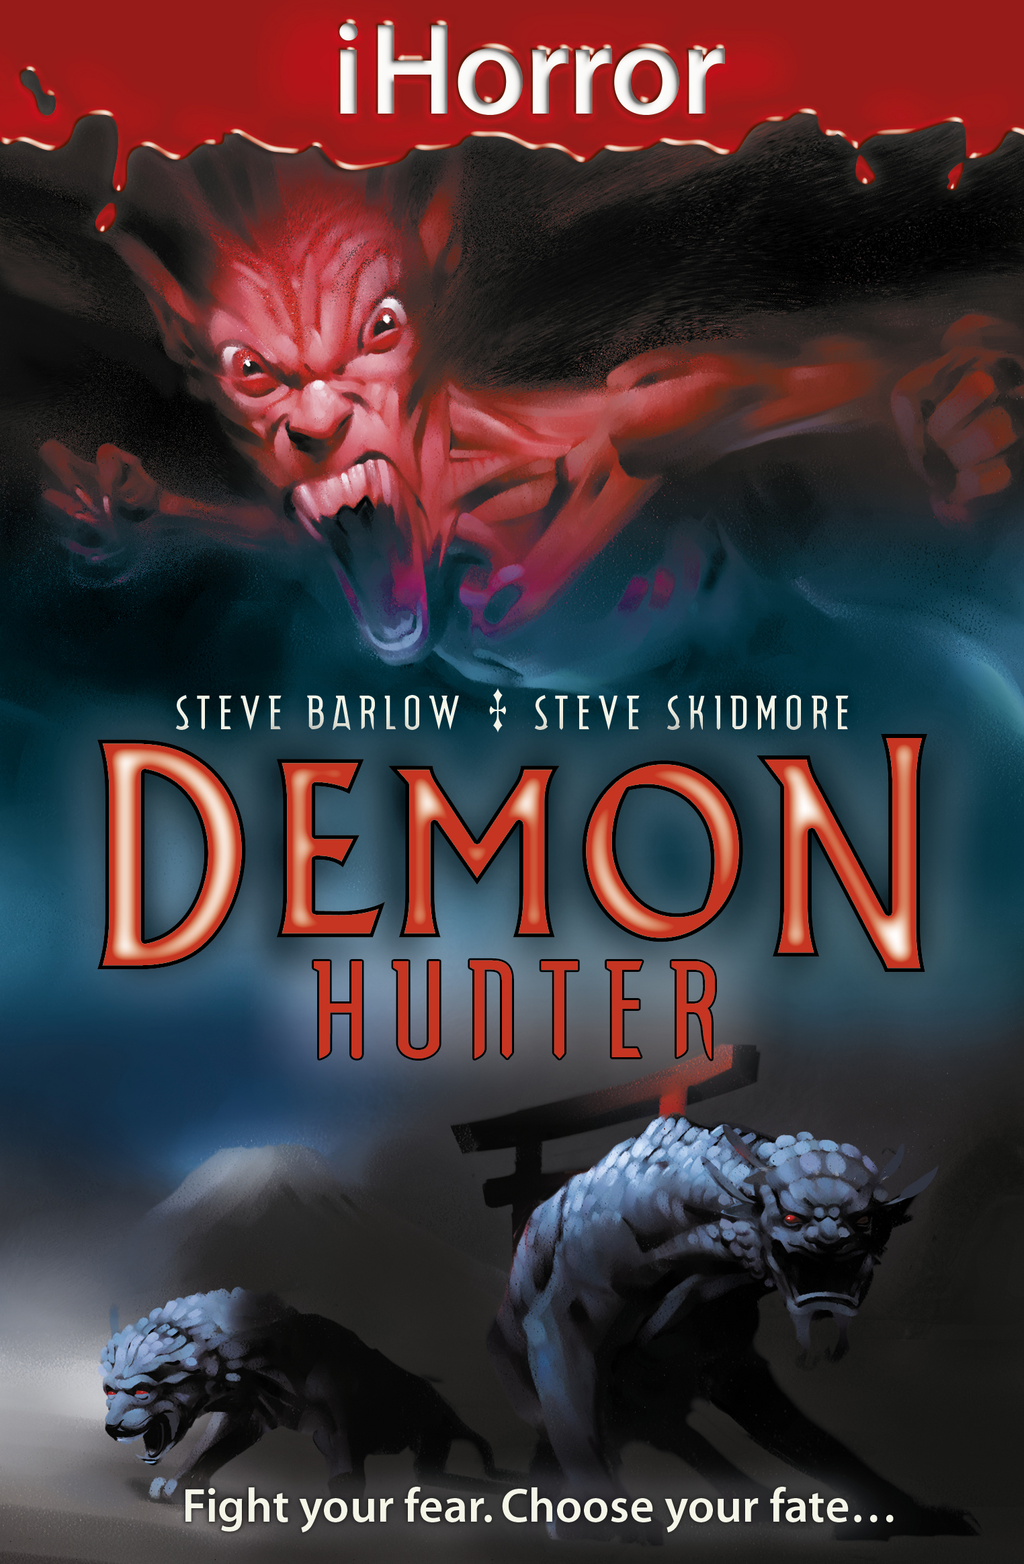 iHorror: Demon Hunter